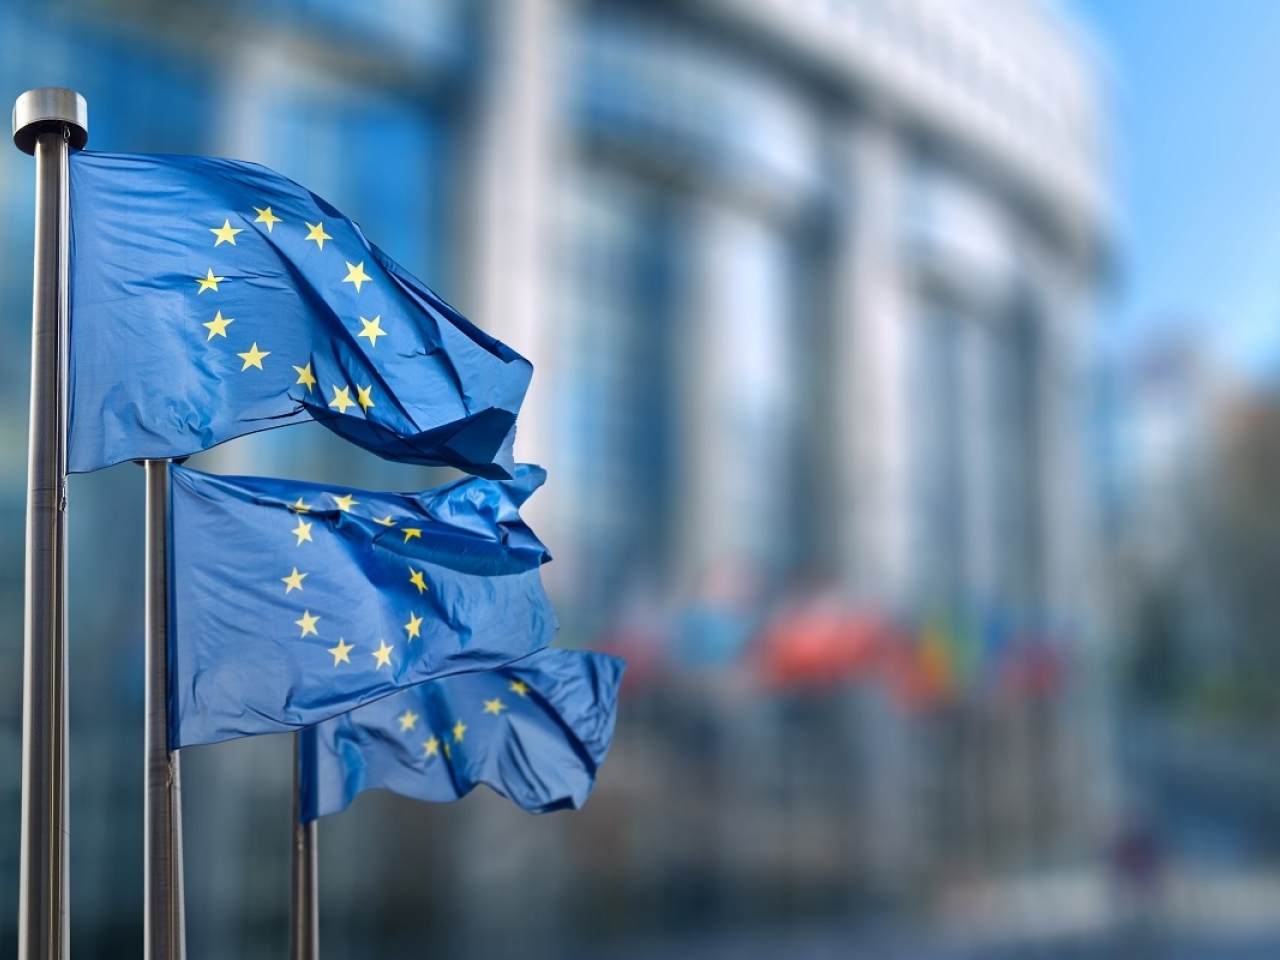 The European Union is trying to maintain a careful balancing act in its relations with China. File photo: Shutterstock